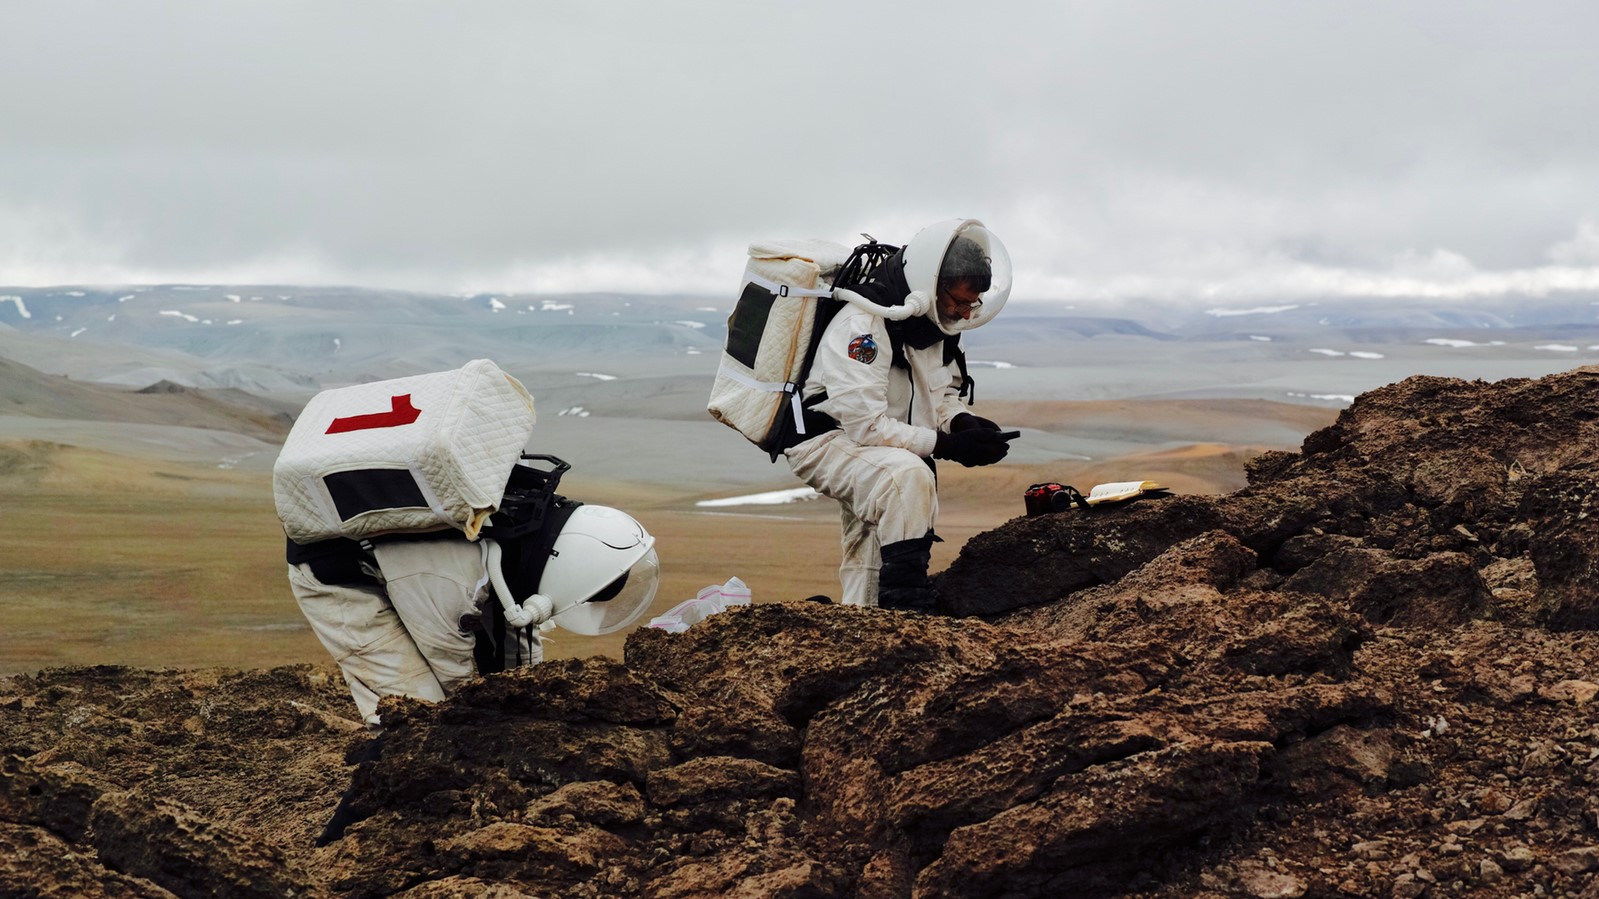 Two crew members of the Mars 160 mission perform a simulated EVA. Photo Credit: Mars Society